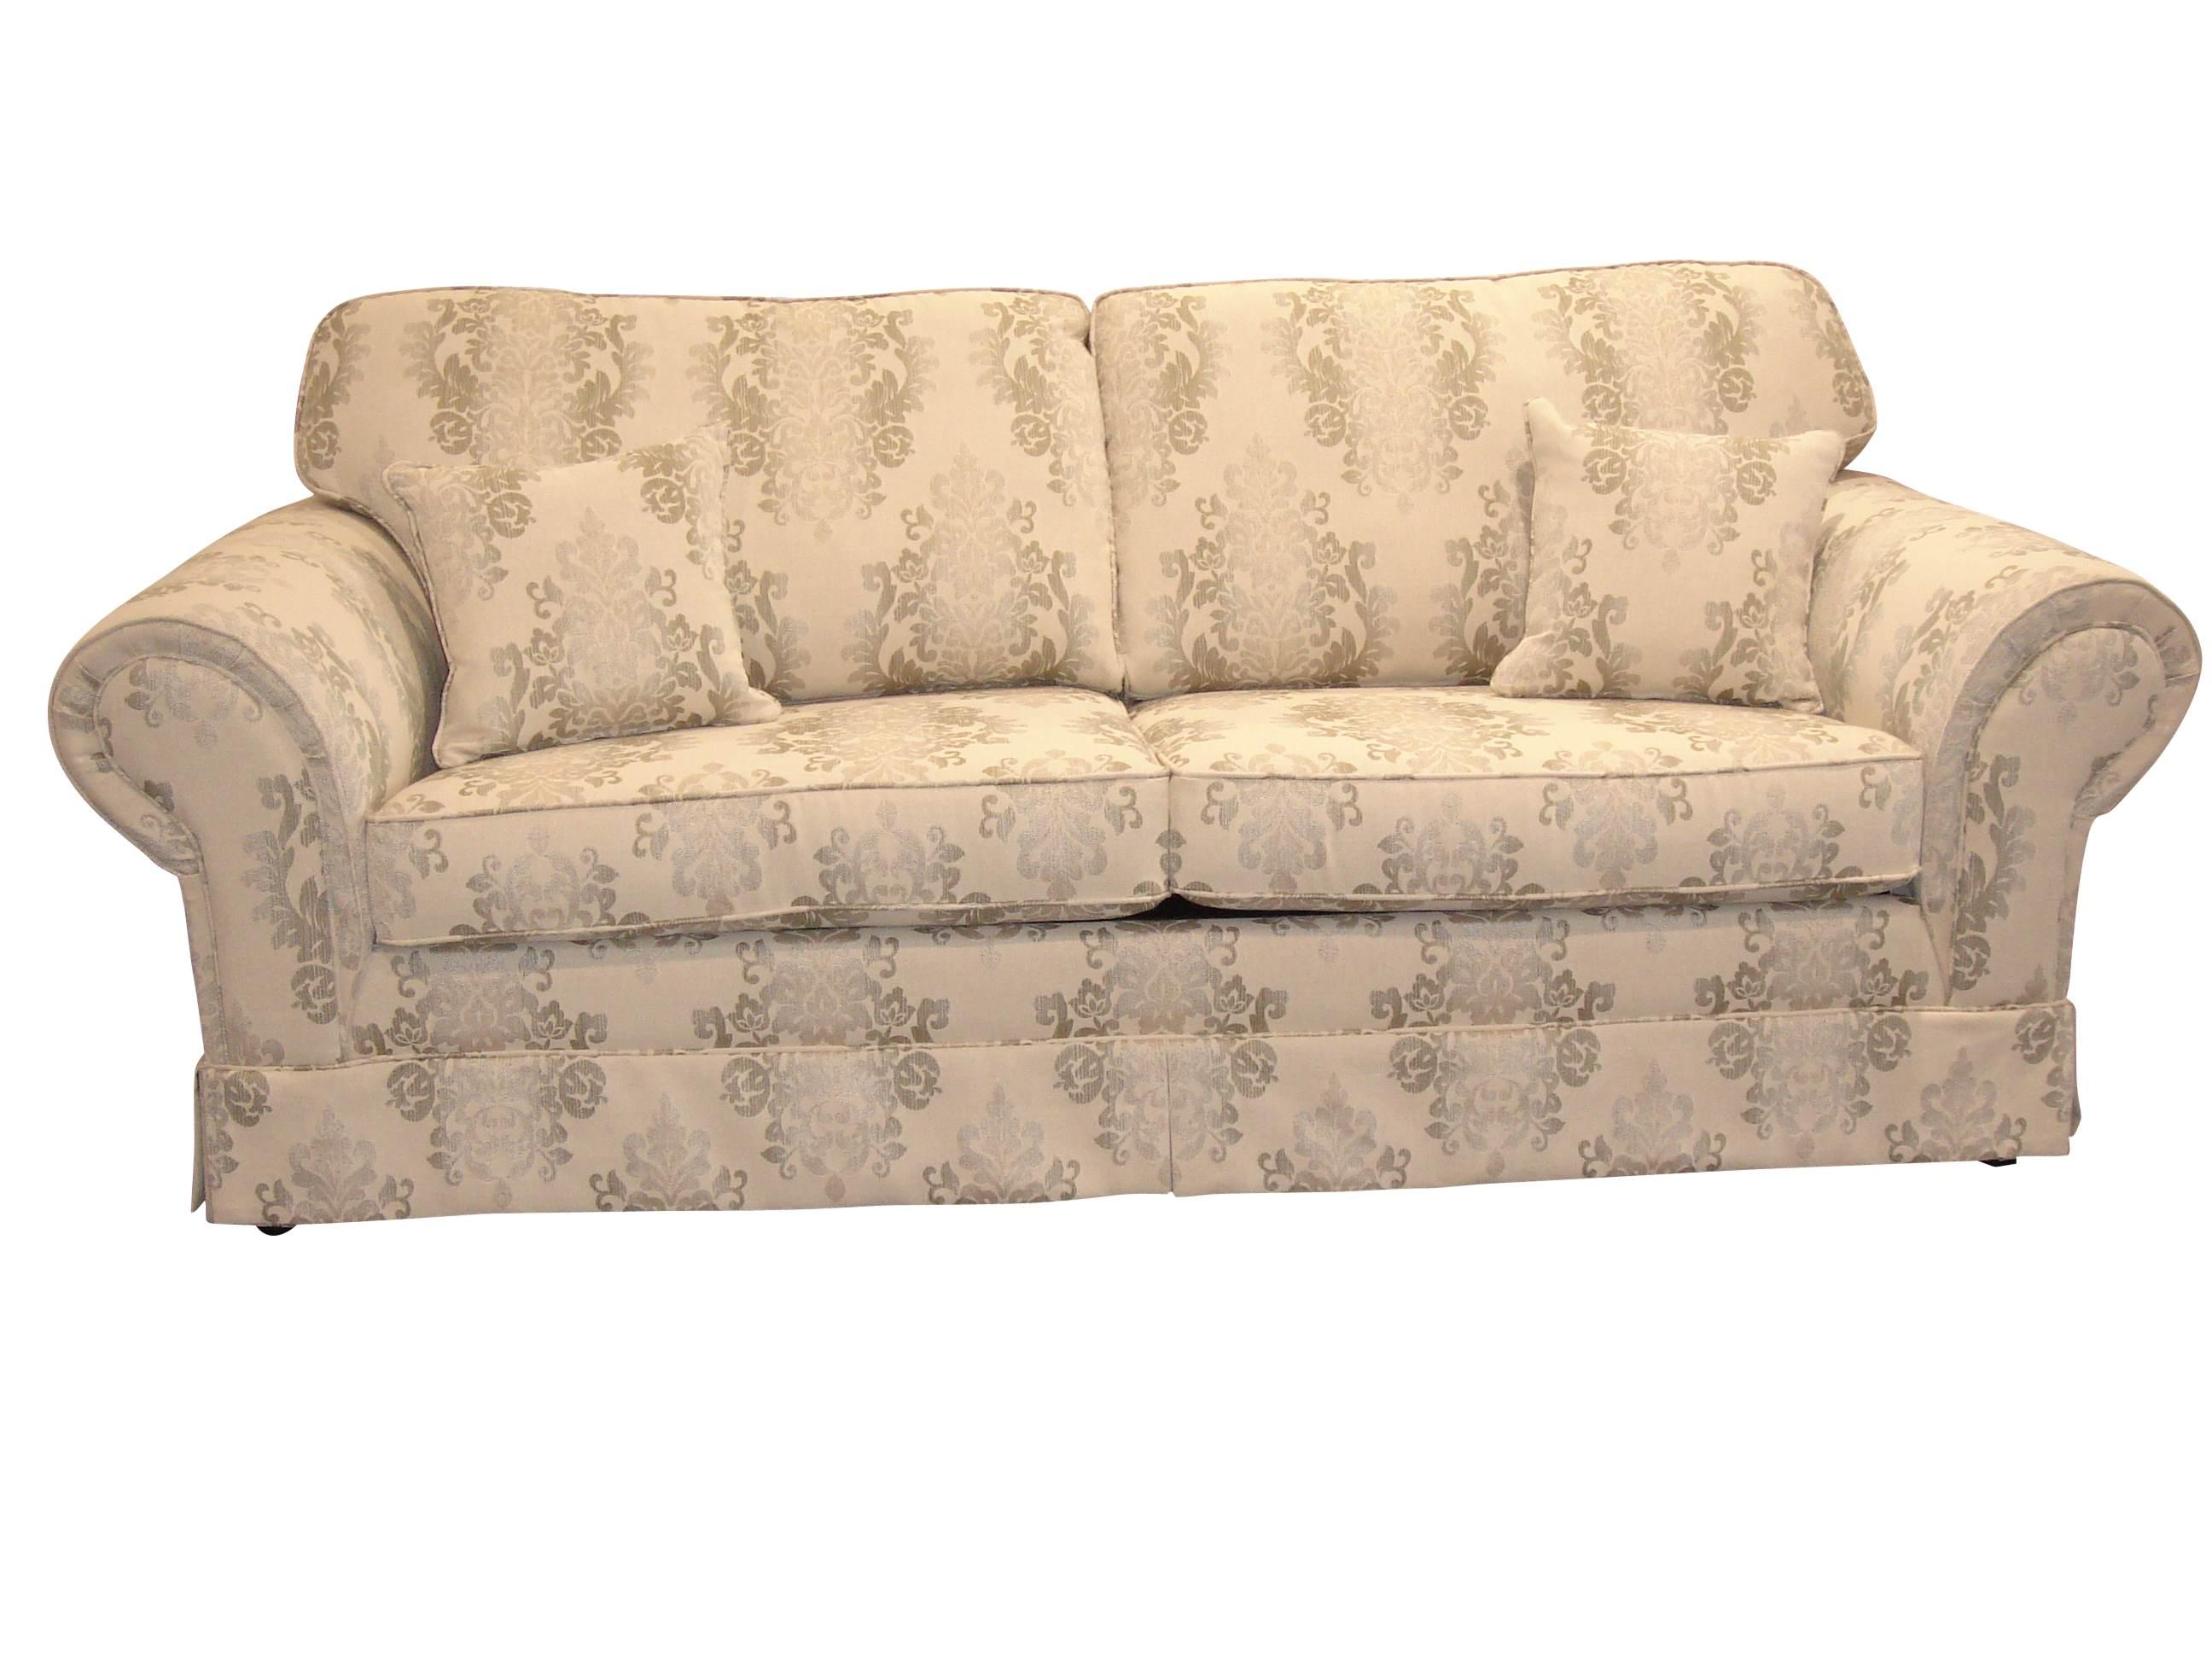 modular lounge with sofa bed adelaide dundee utd youth falkirk sofascore sofabed specialists